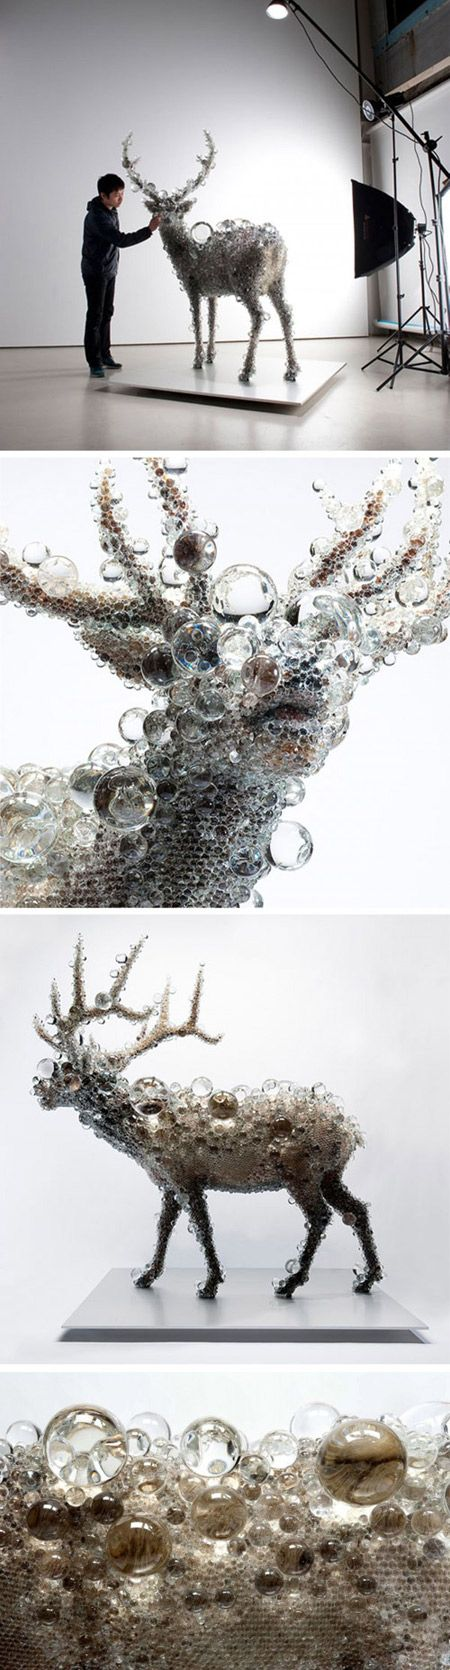 The artist Kohei Nawa, from Osaka, Japan, transforms the body of an elk by covering it with transparent glass and resin beads, transforming our perception of the original creature.